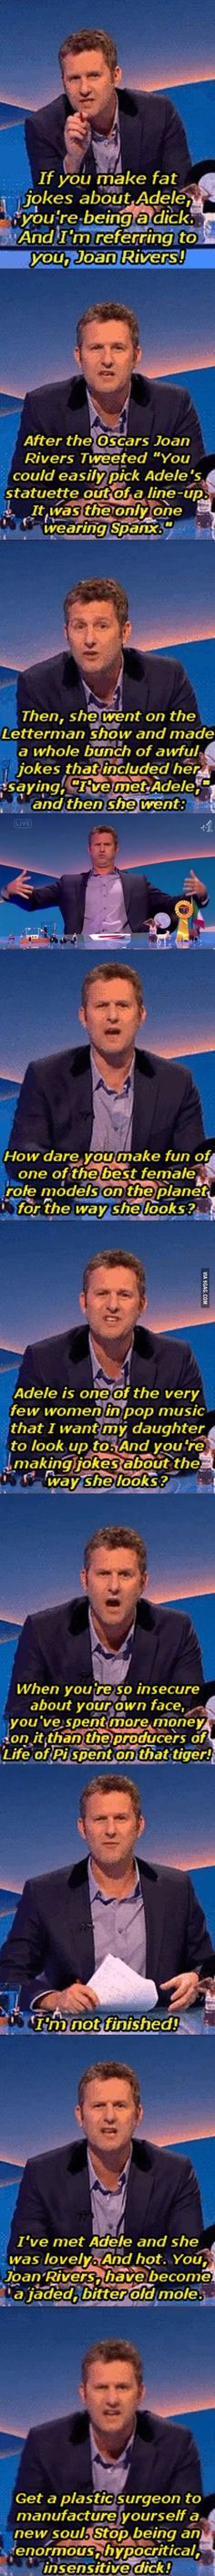 Comedian Destroys Joan Rivers Over Adele Comments... - 9GAG